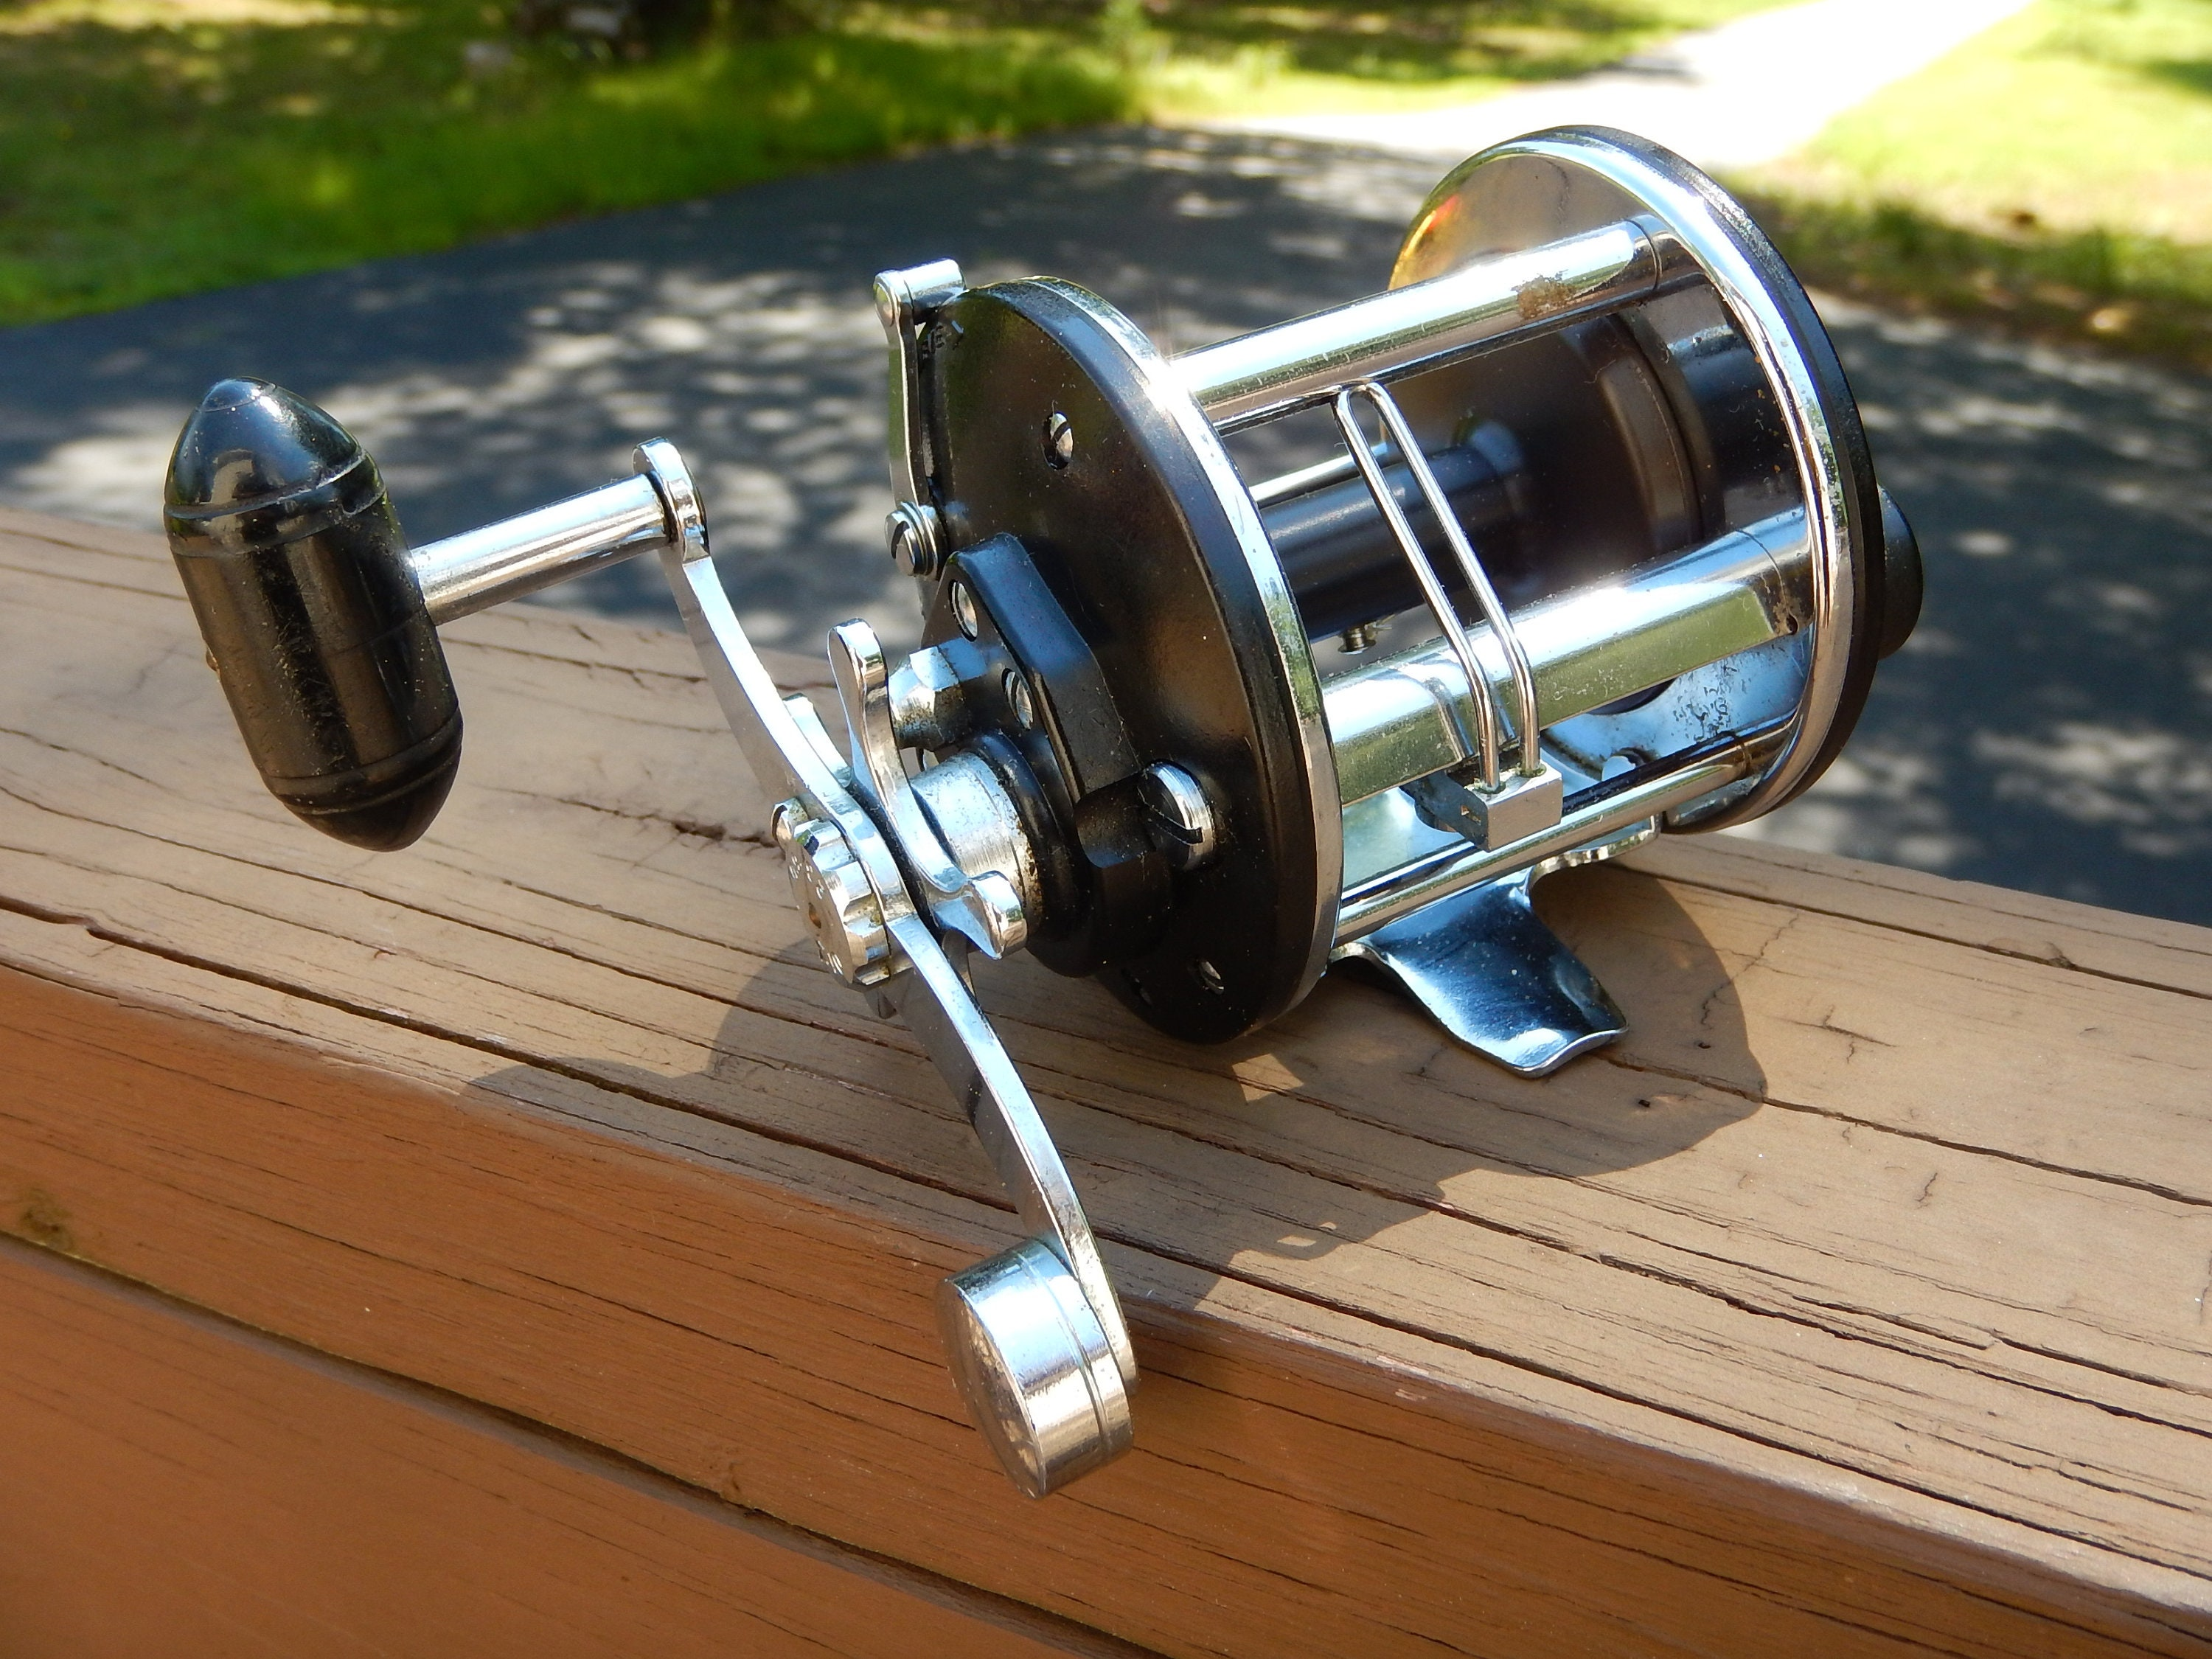 Penn 9 Level Wind Fishing ReelEXCELLENT Condition Fully Operational BEAUTIFUL Reel Pen9